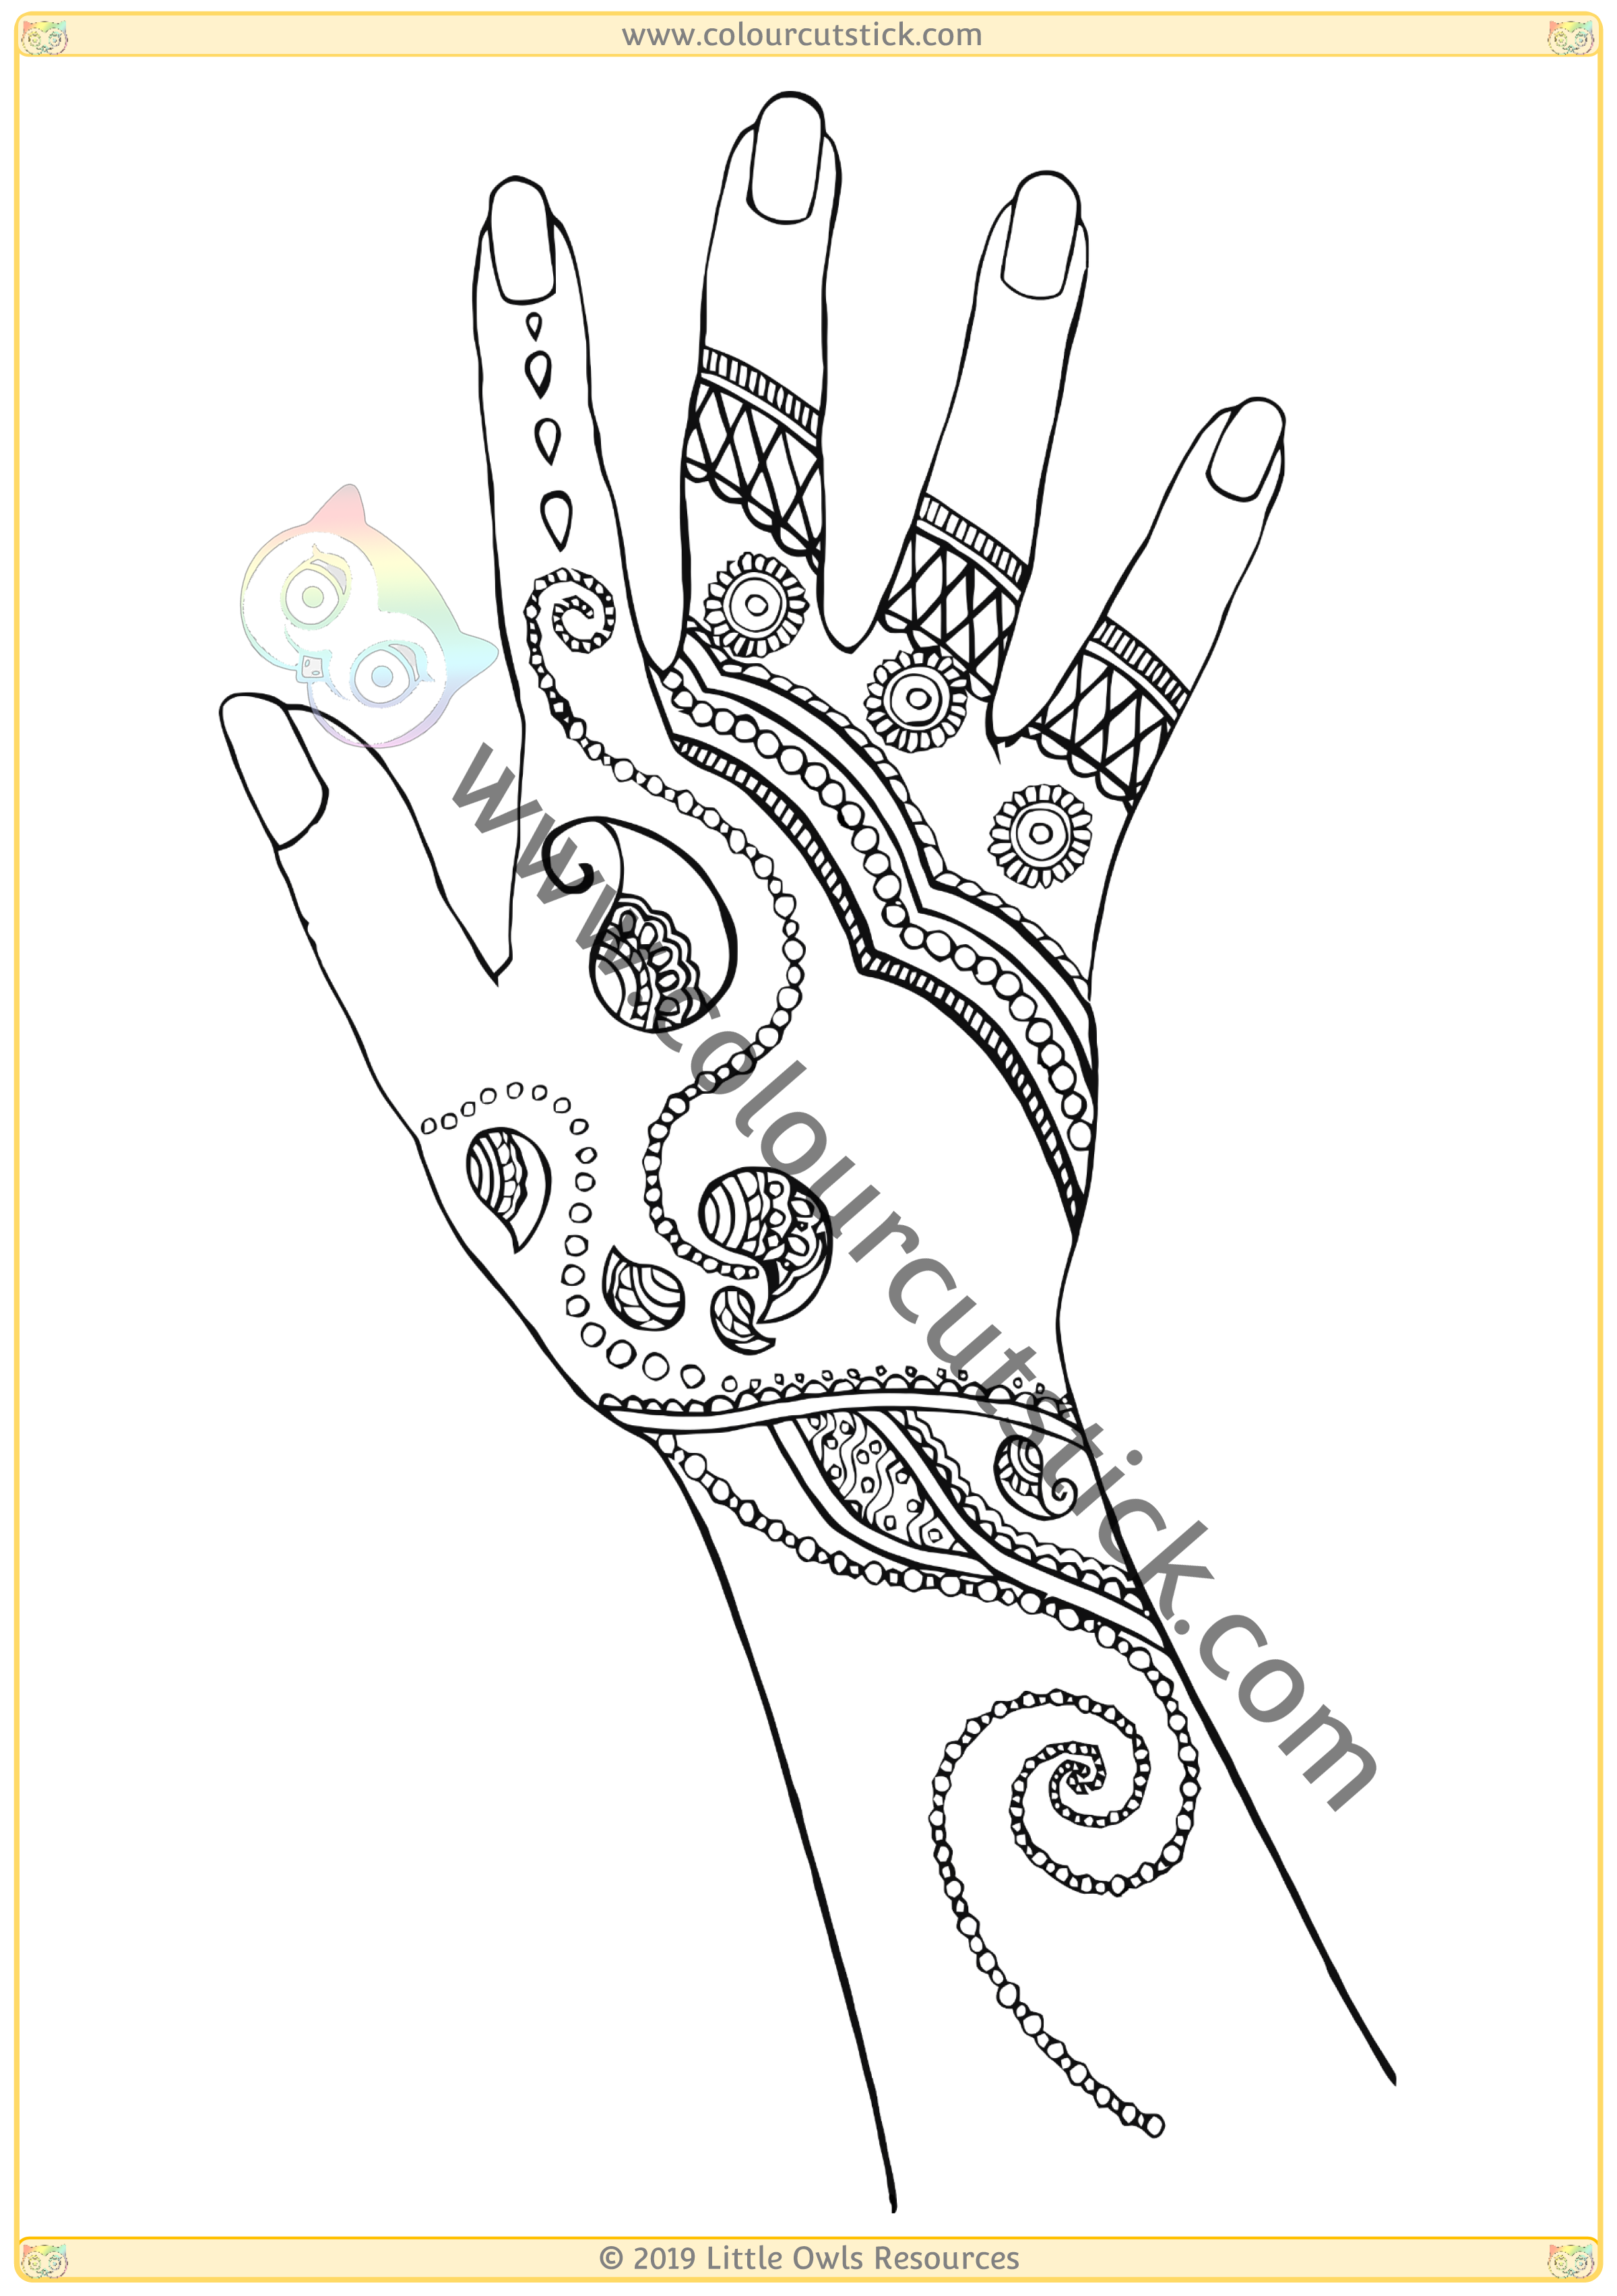 Diwali Colouring CSS-11.png